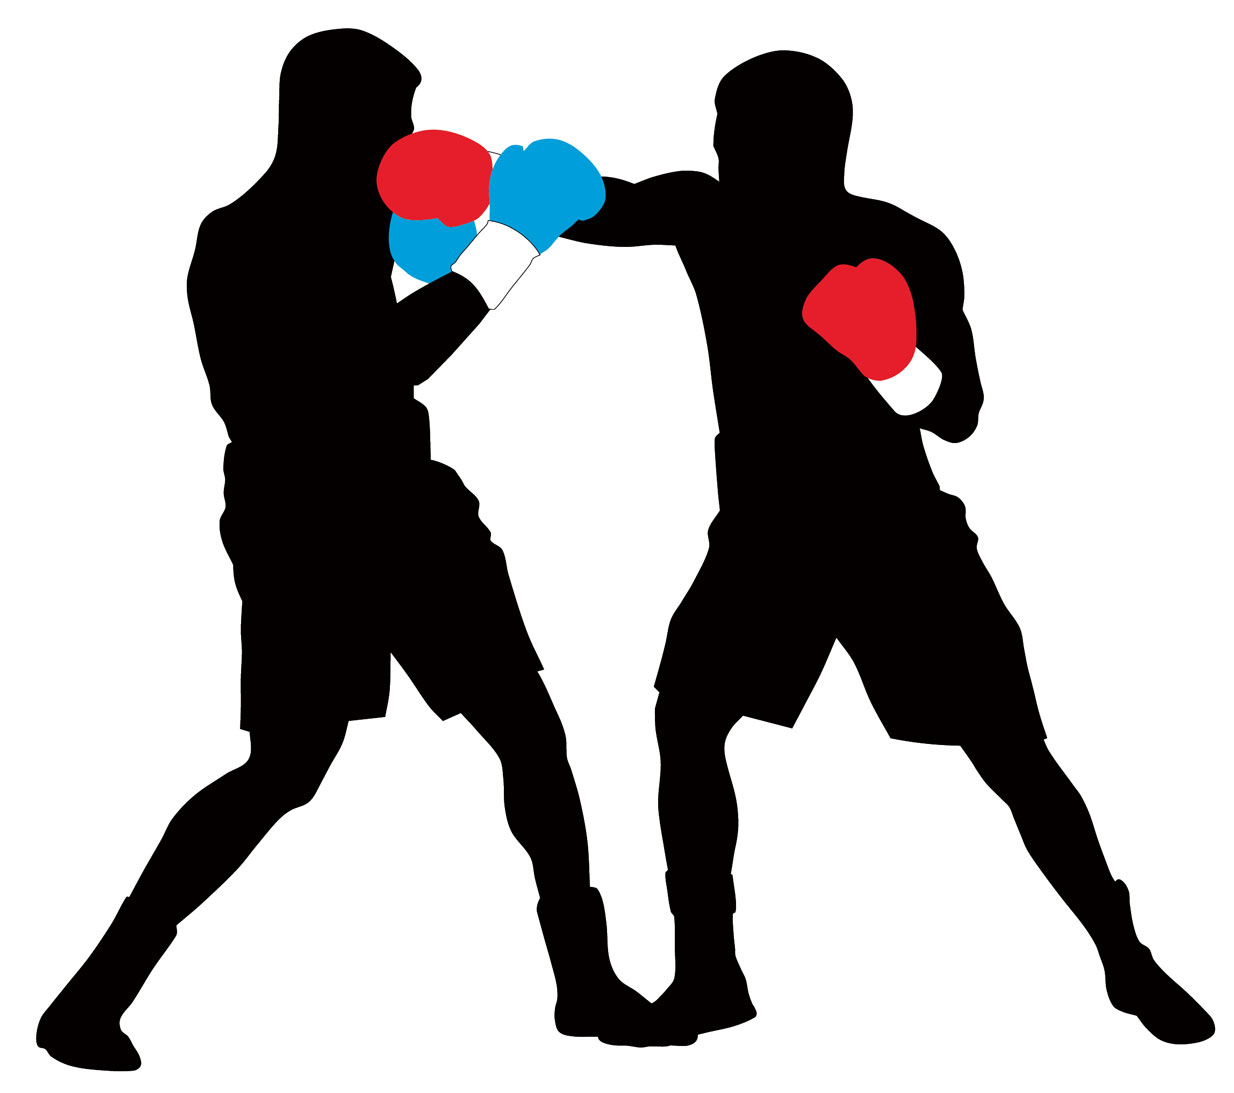 Boxxing clipart clip royalty free Free Boxing Cliparts, Download Free Clip Art, Free Clip Art on ... clip royalty free